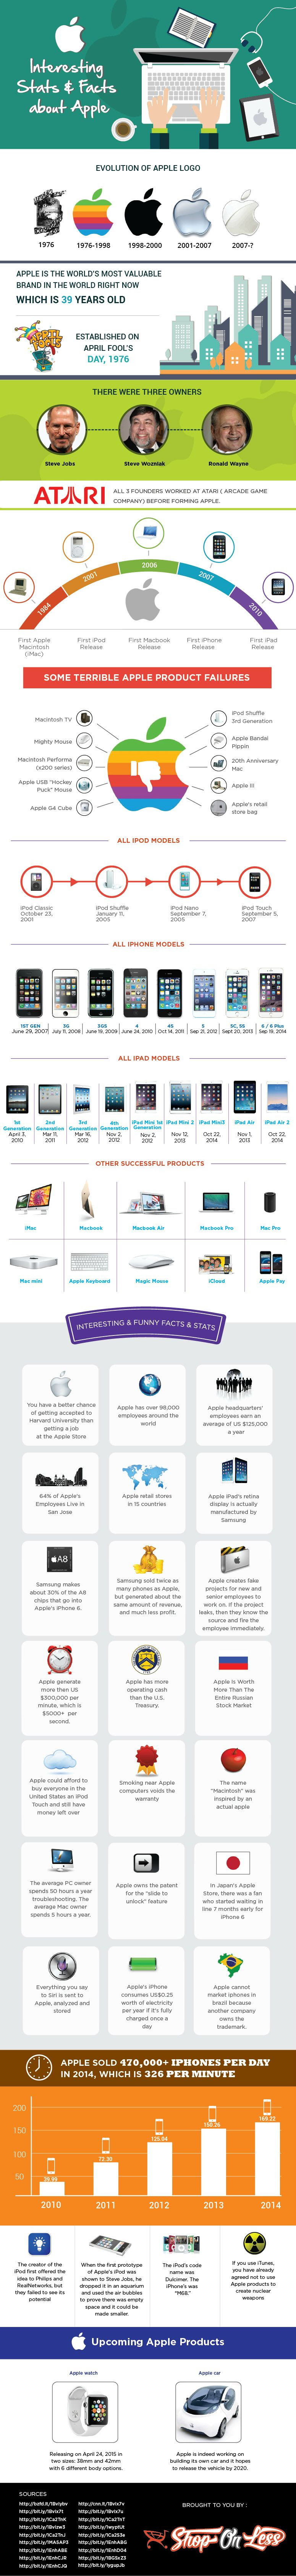 Success Story of Apple's Products - Infographic